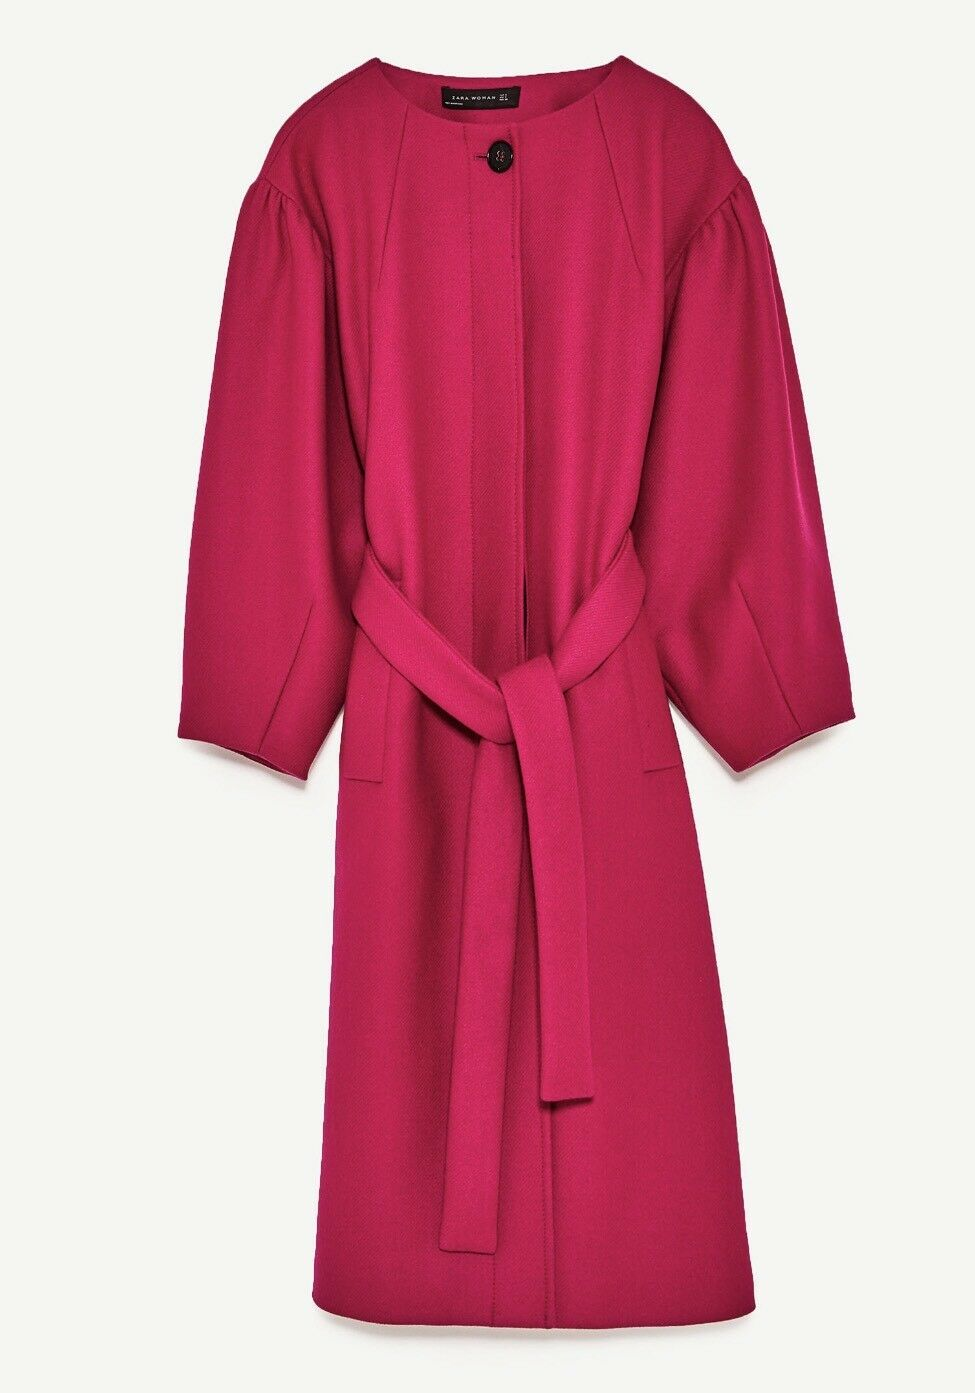 Zara Women's Coat Full Sleeves Fushia Size M NWT